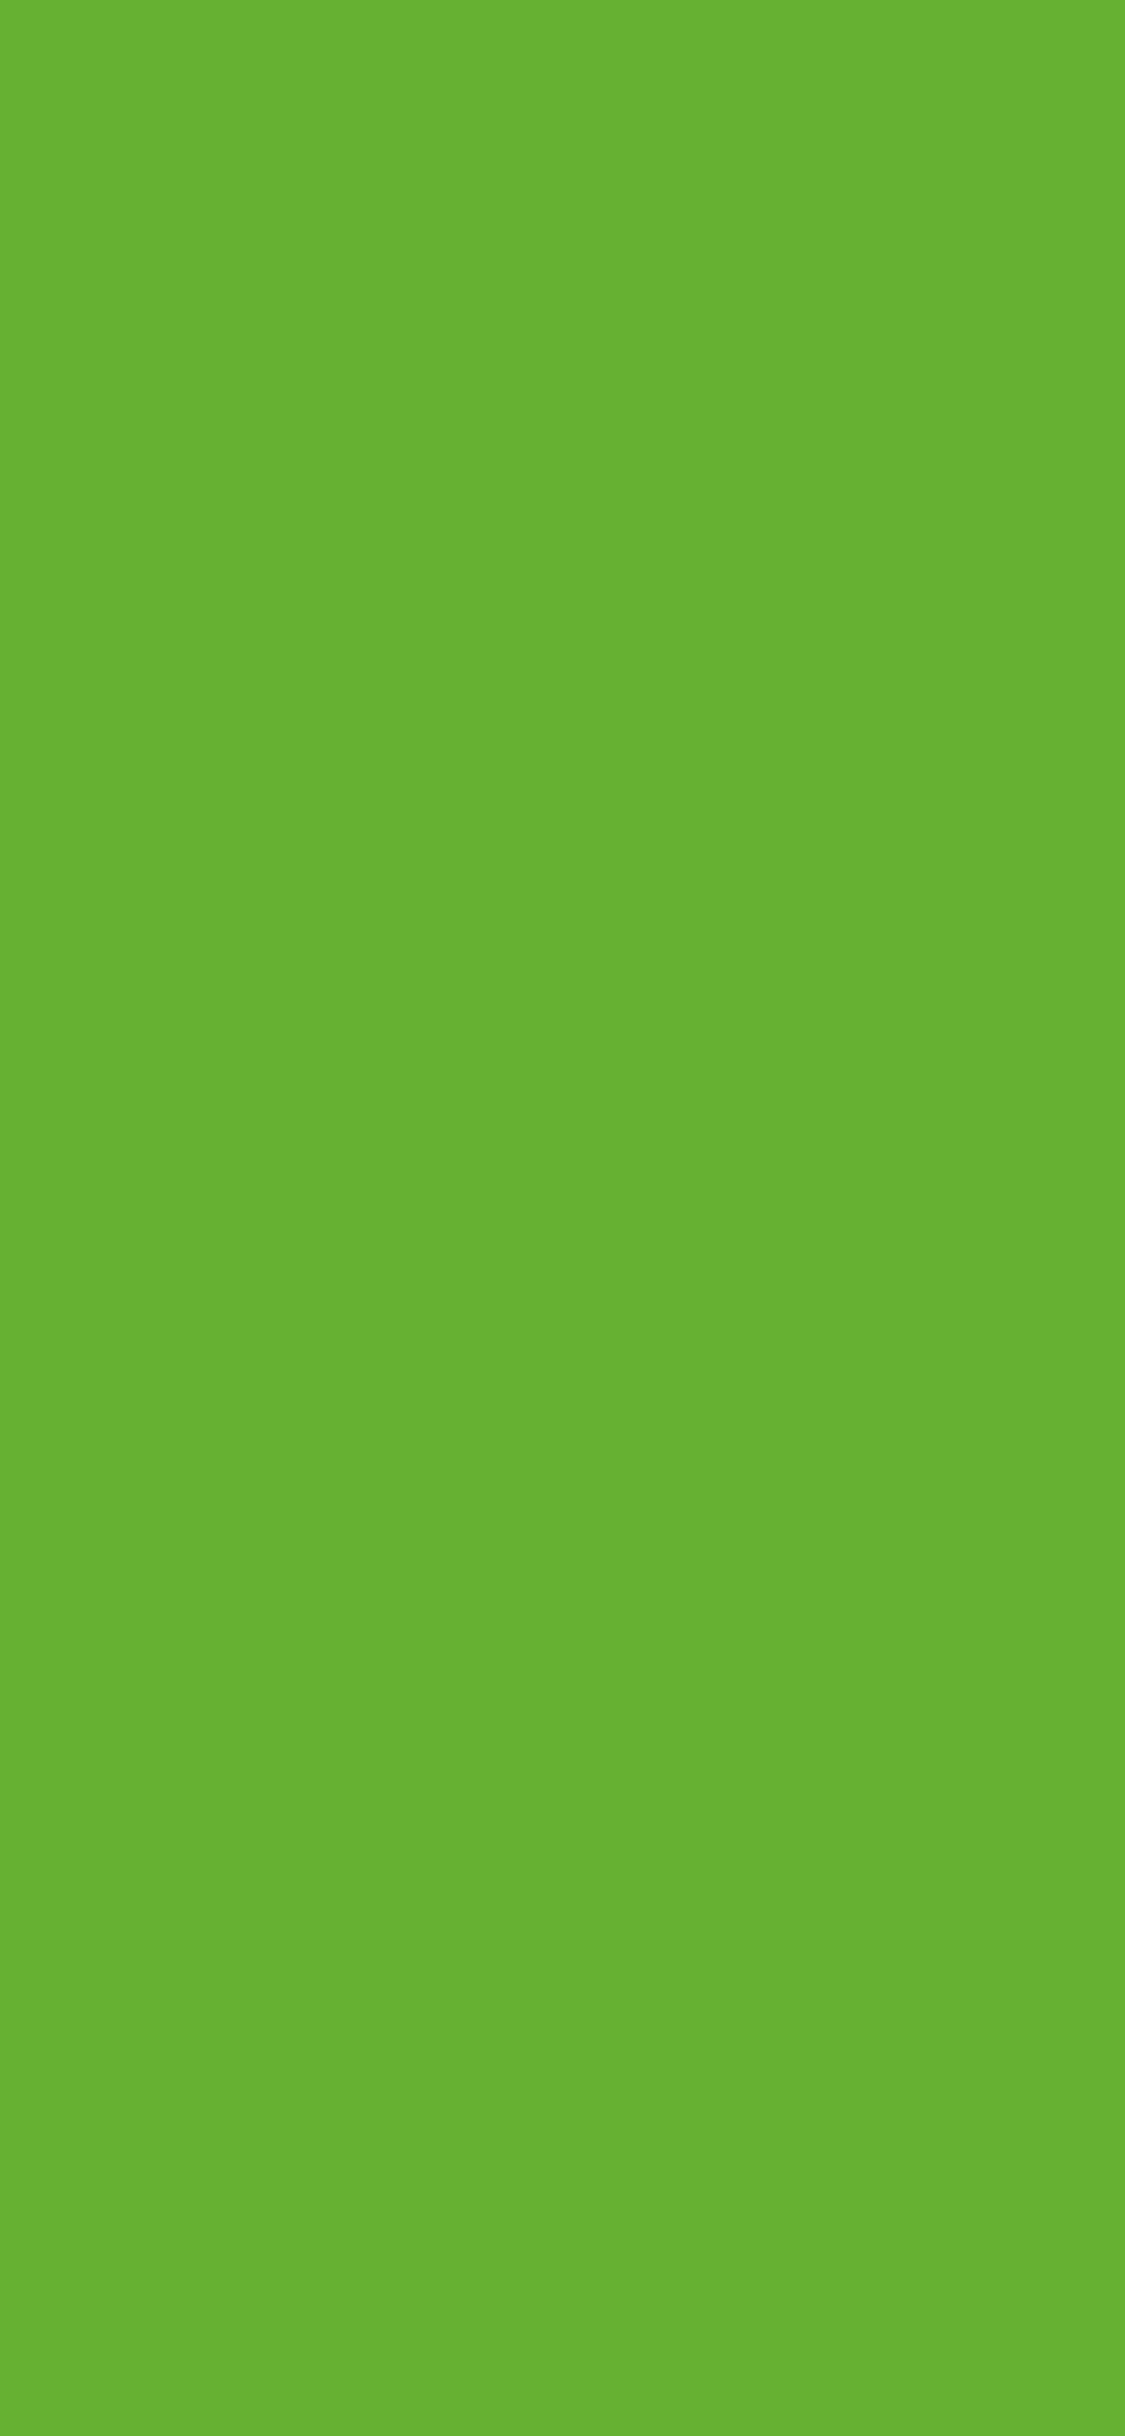 1125x2436 Green RYB Solid Color Background